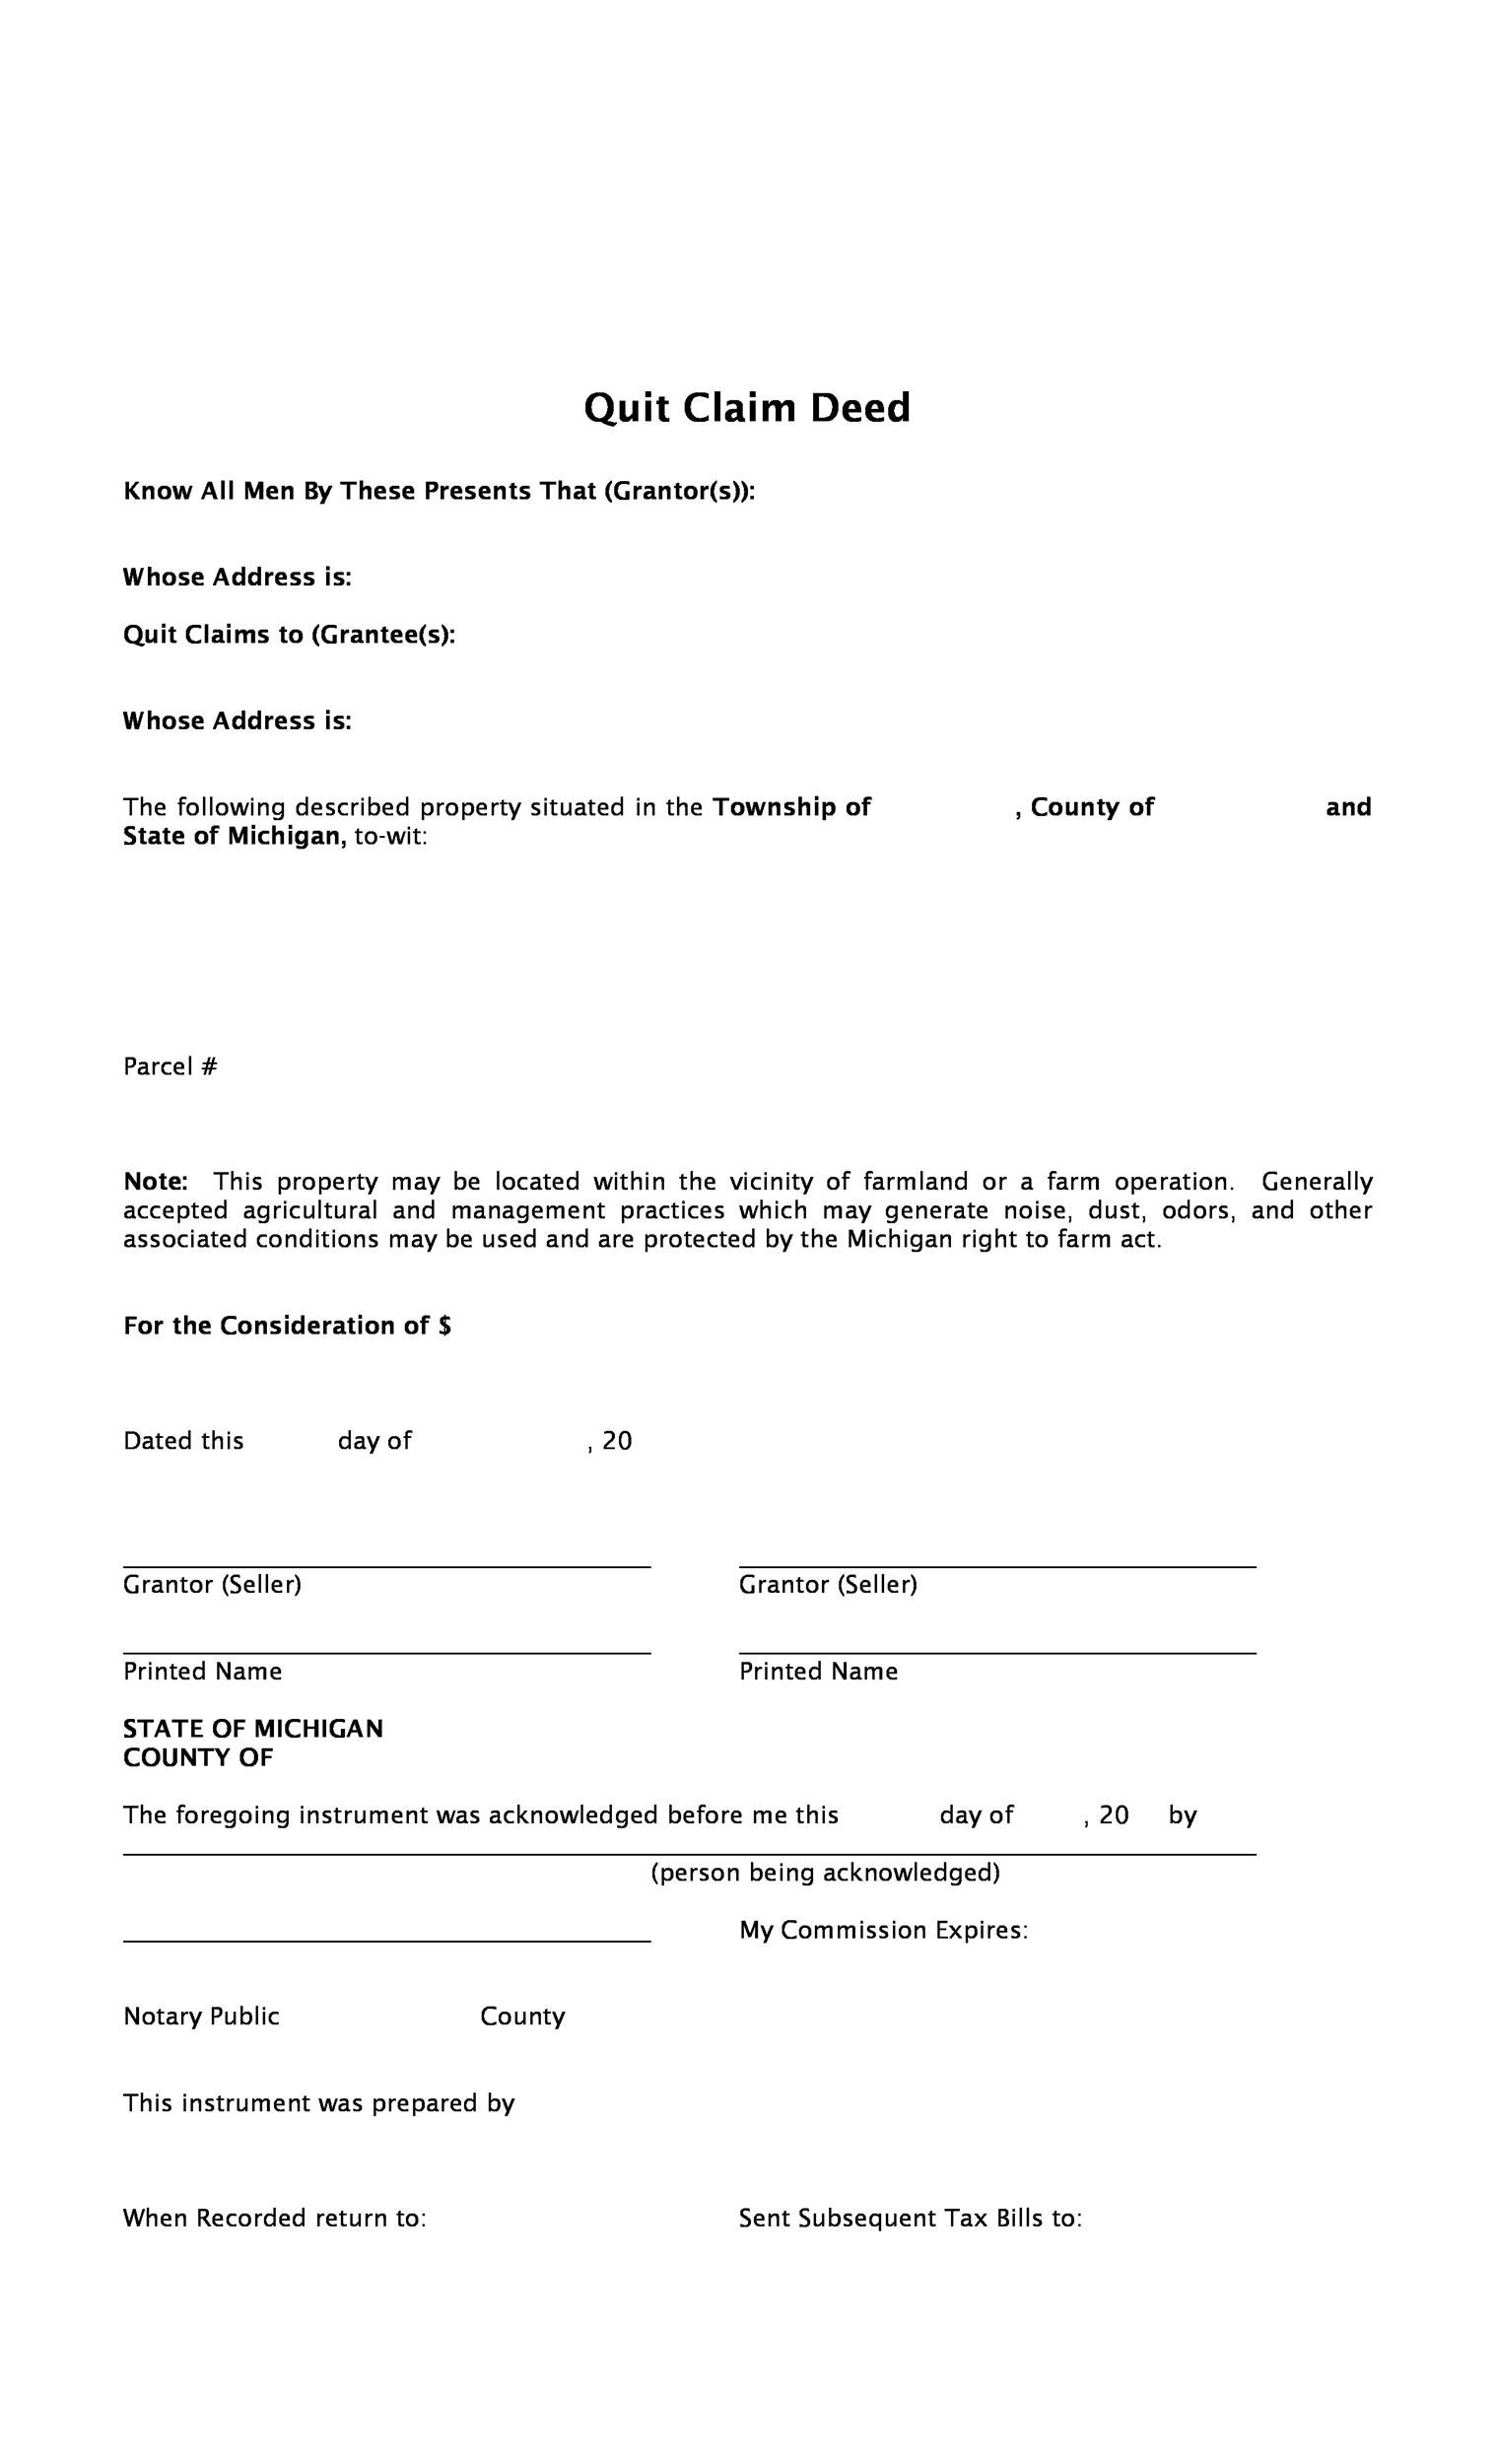 quick claim deed form free  Quit Claim Deed Form Iowa Free   How To Include Keywords In ...